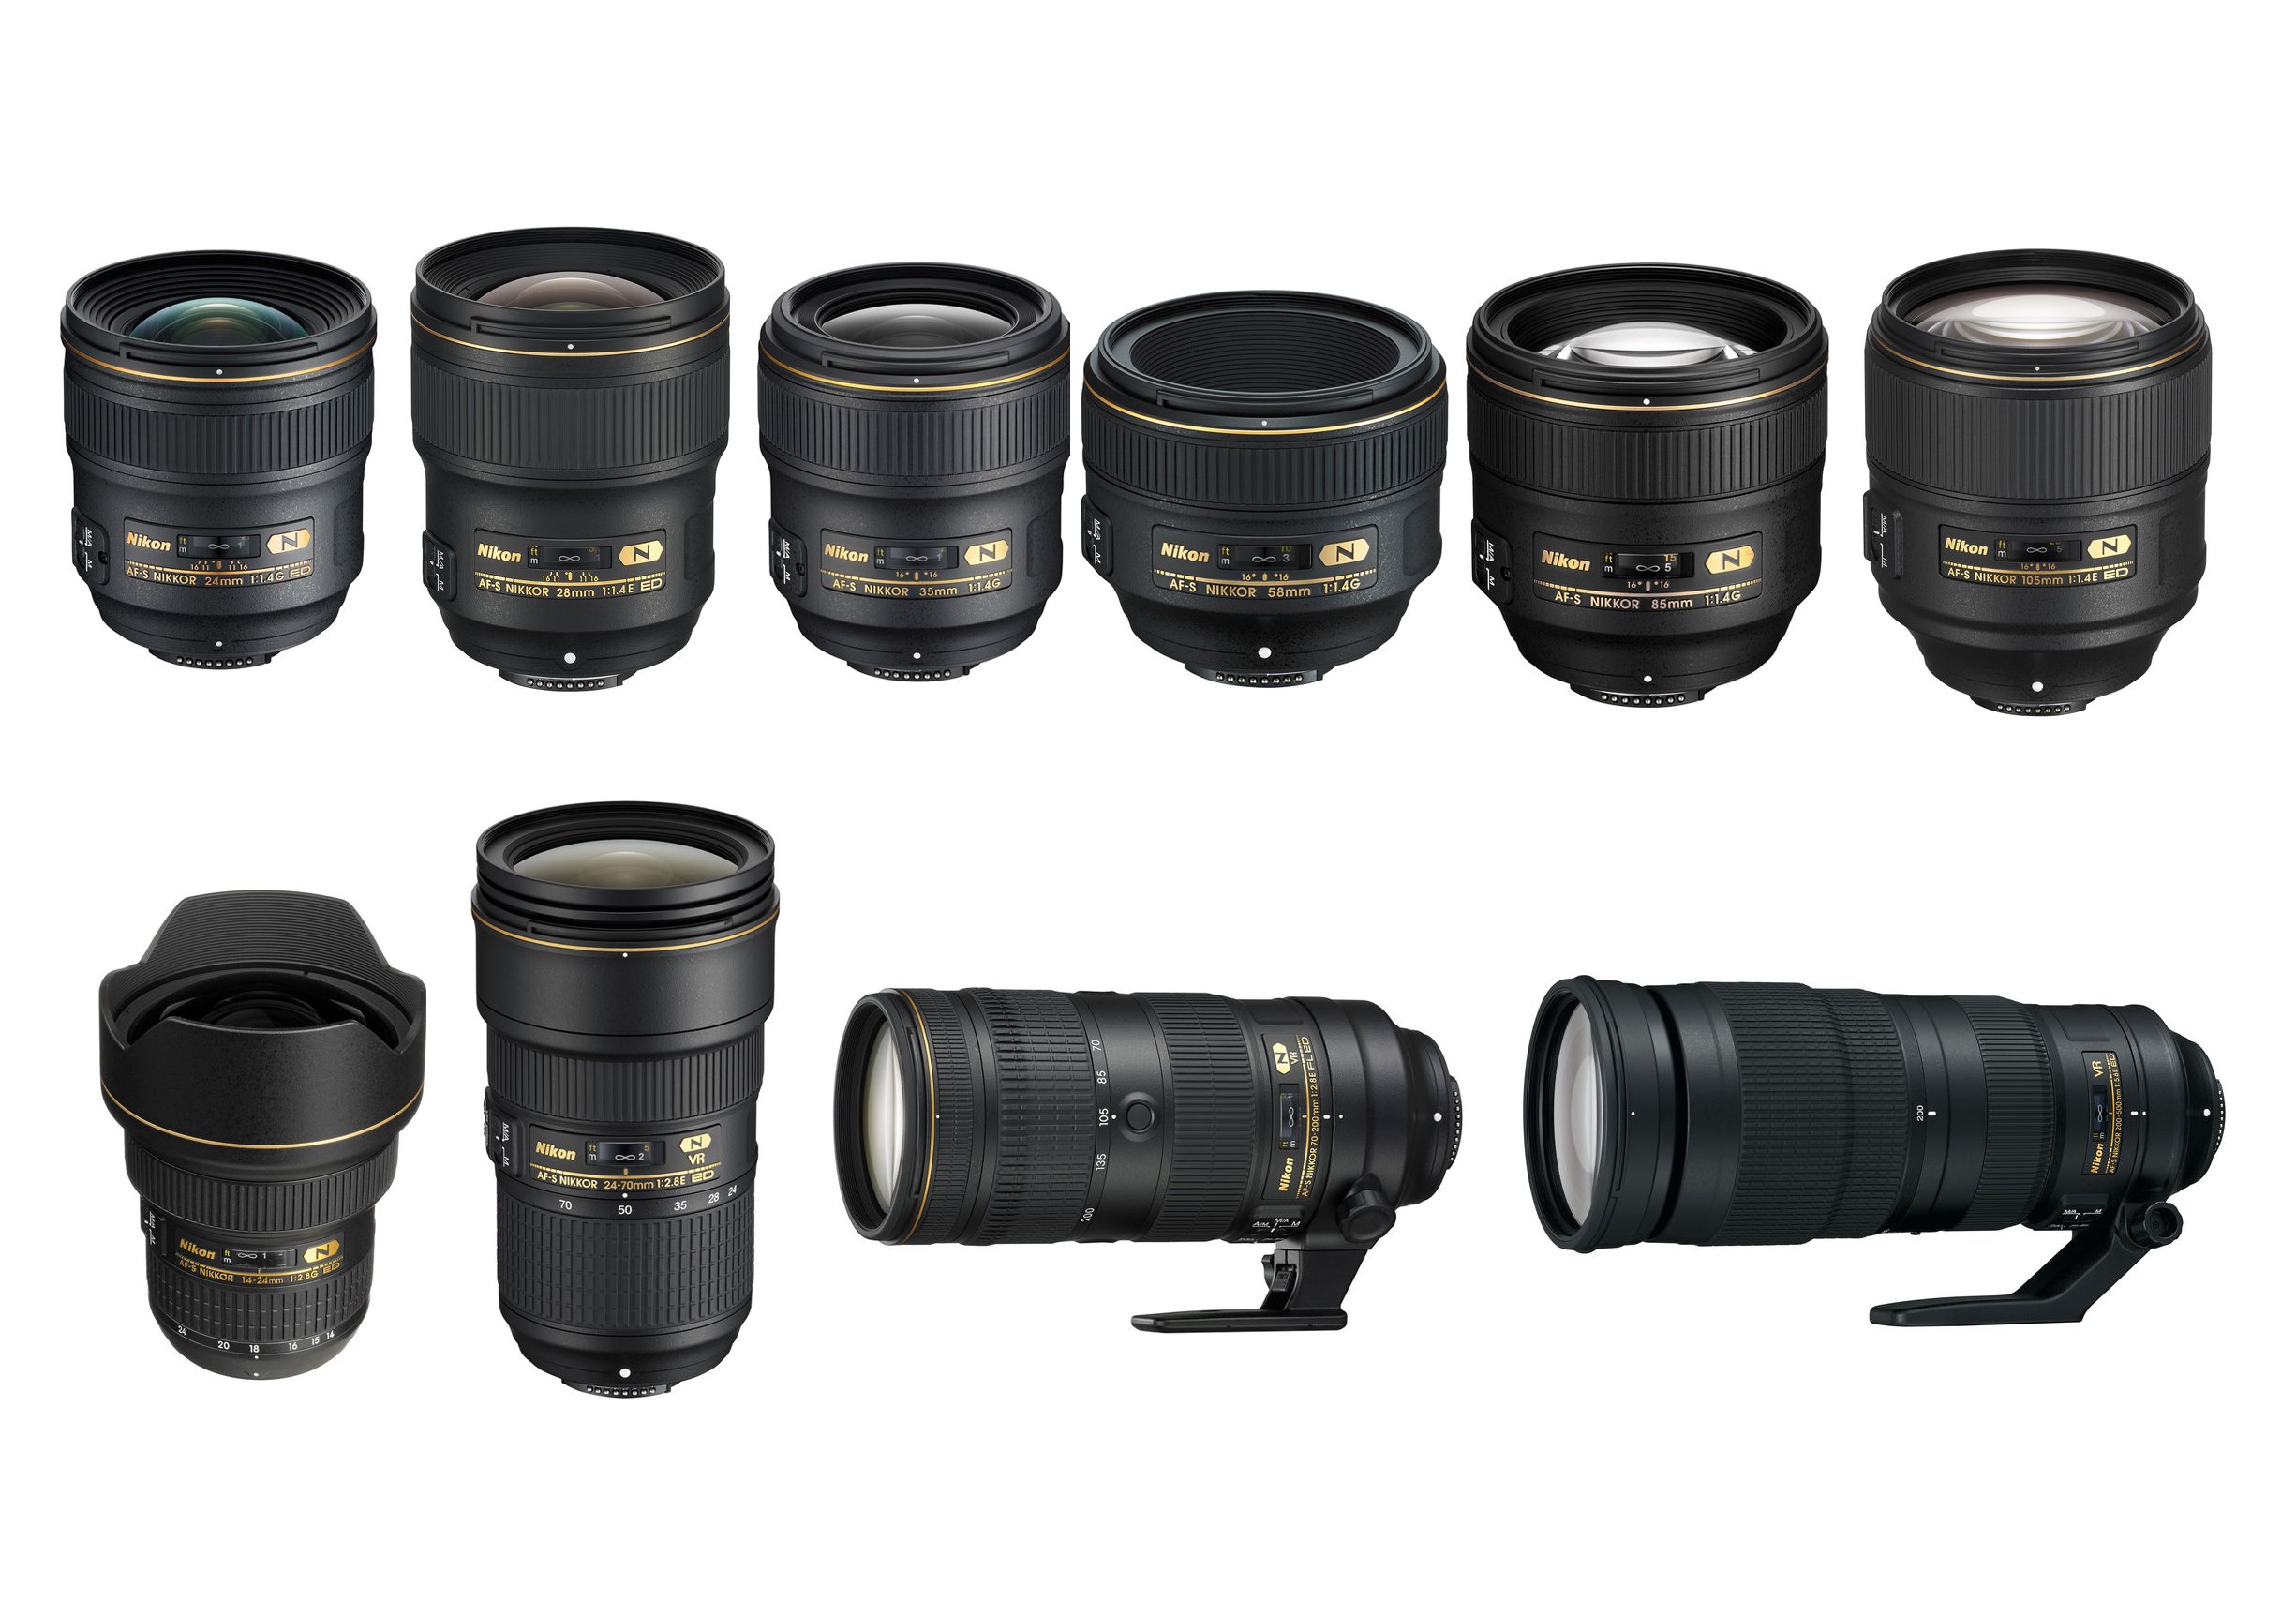 10 Best Nikon Lenses for Nikon D750 | Nikon Rumors CO